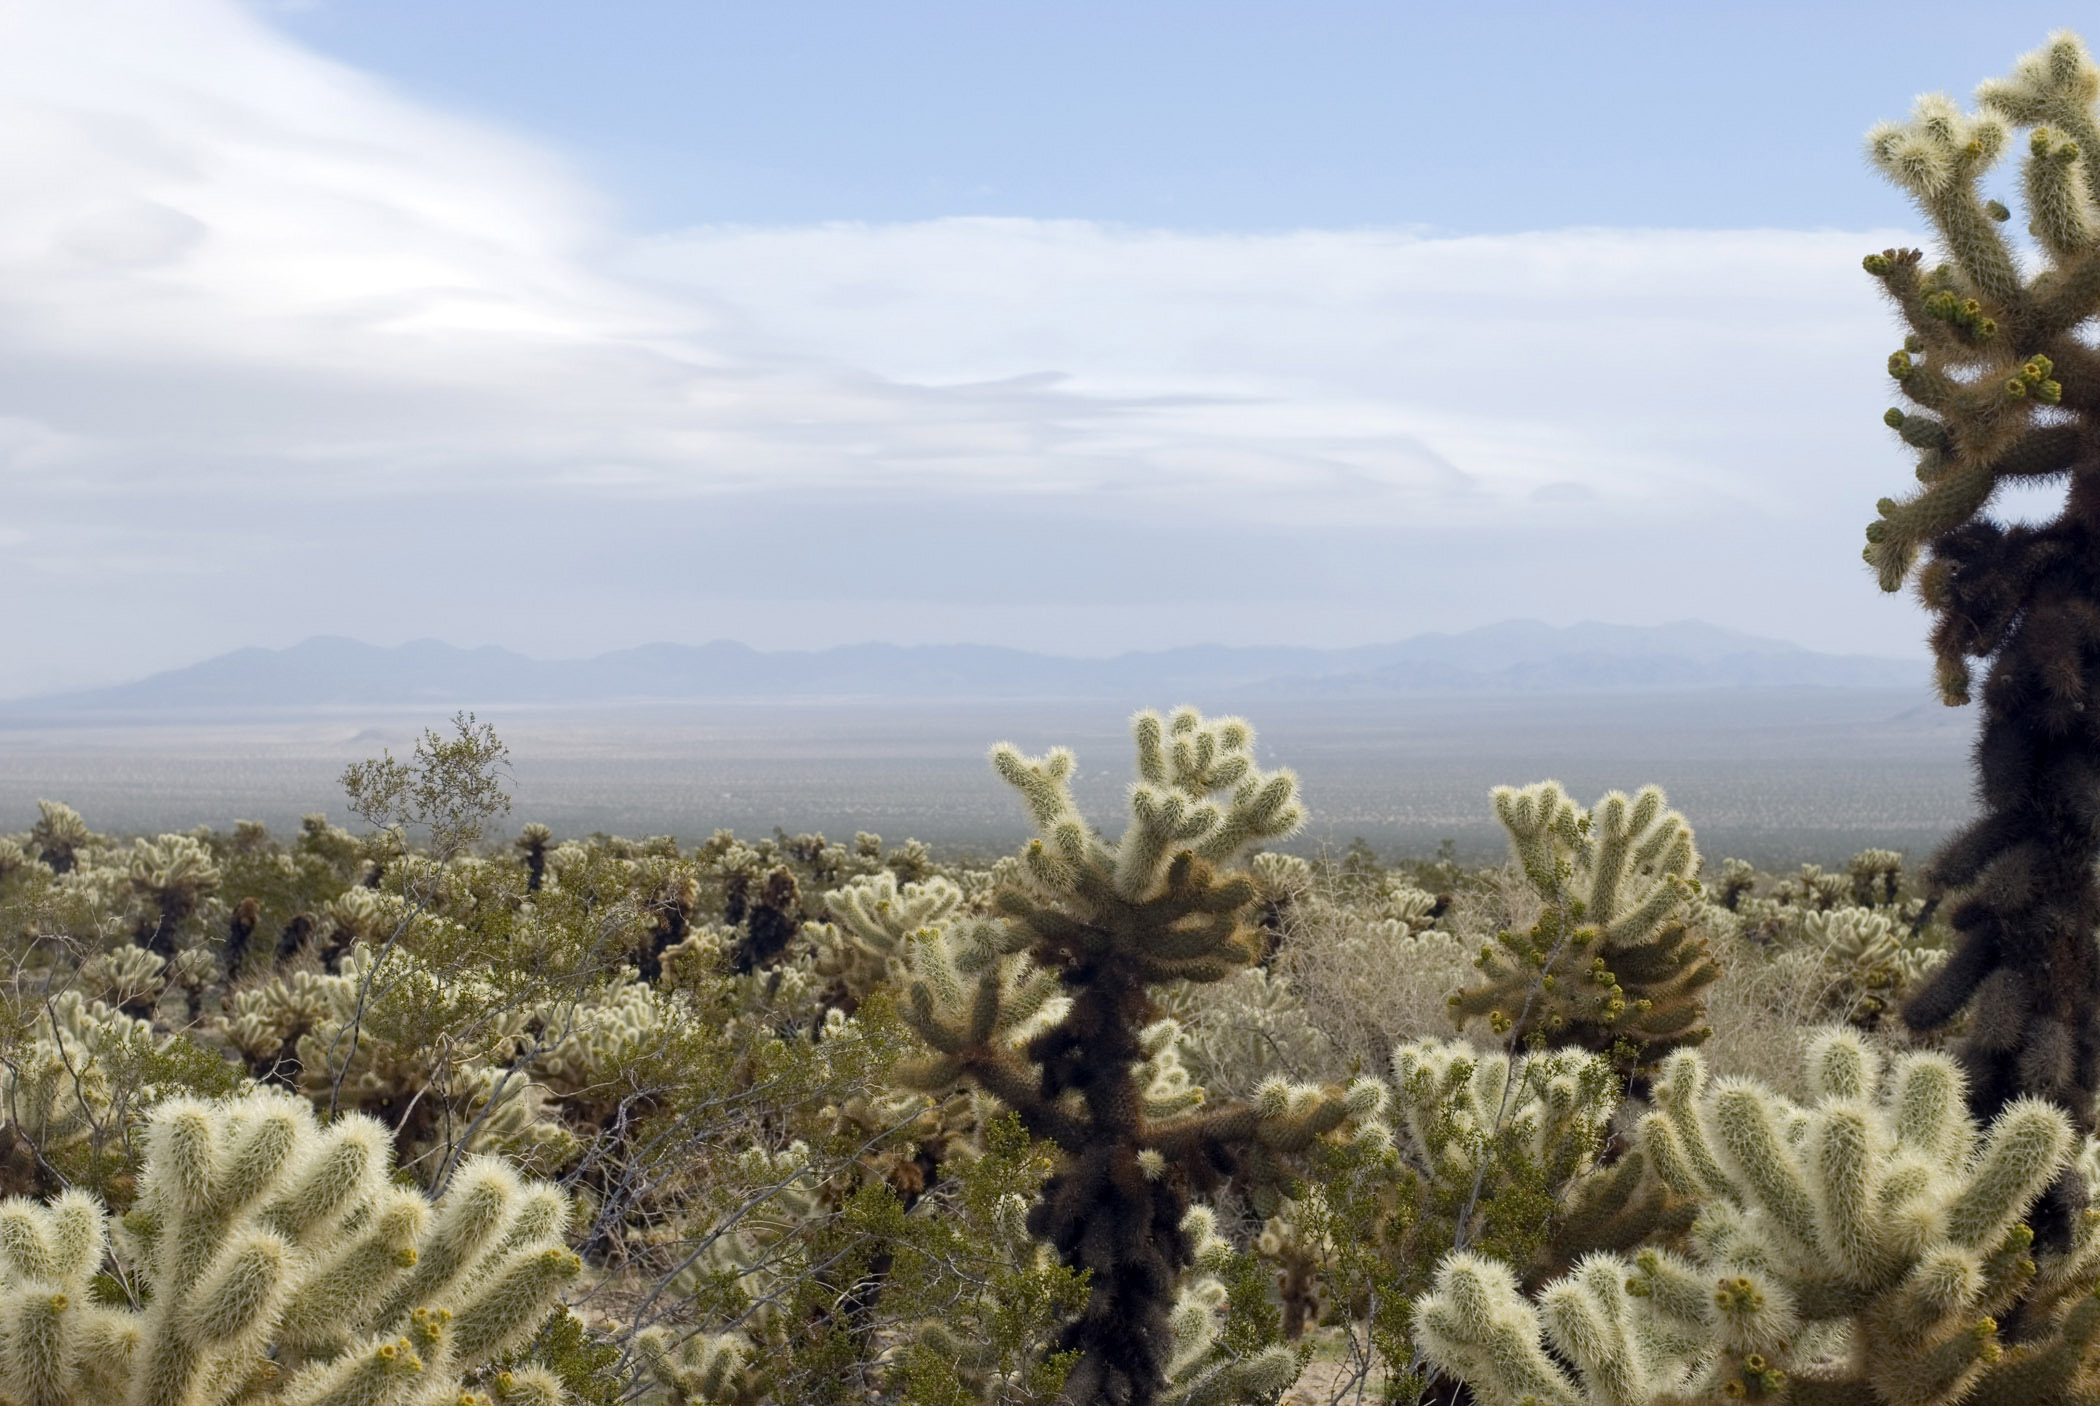 Various Cactus Plants at Cholla Cactus Garden. Isolated on Lighter Blue and White Sky Background.